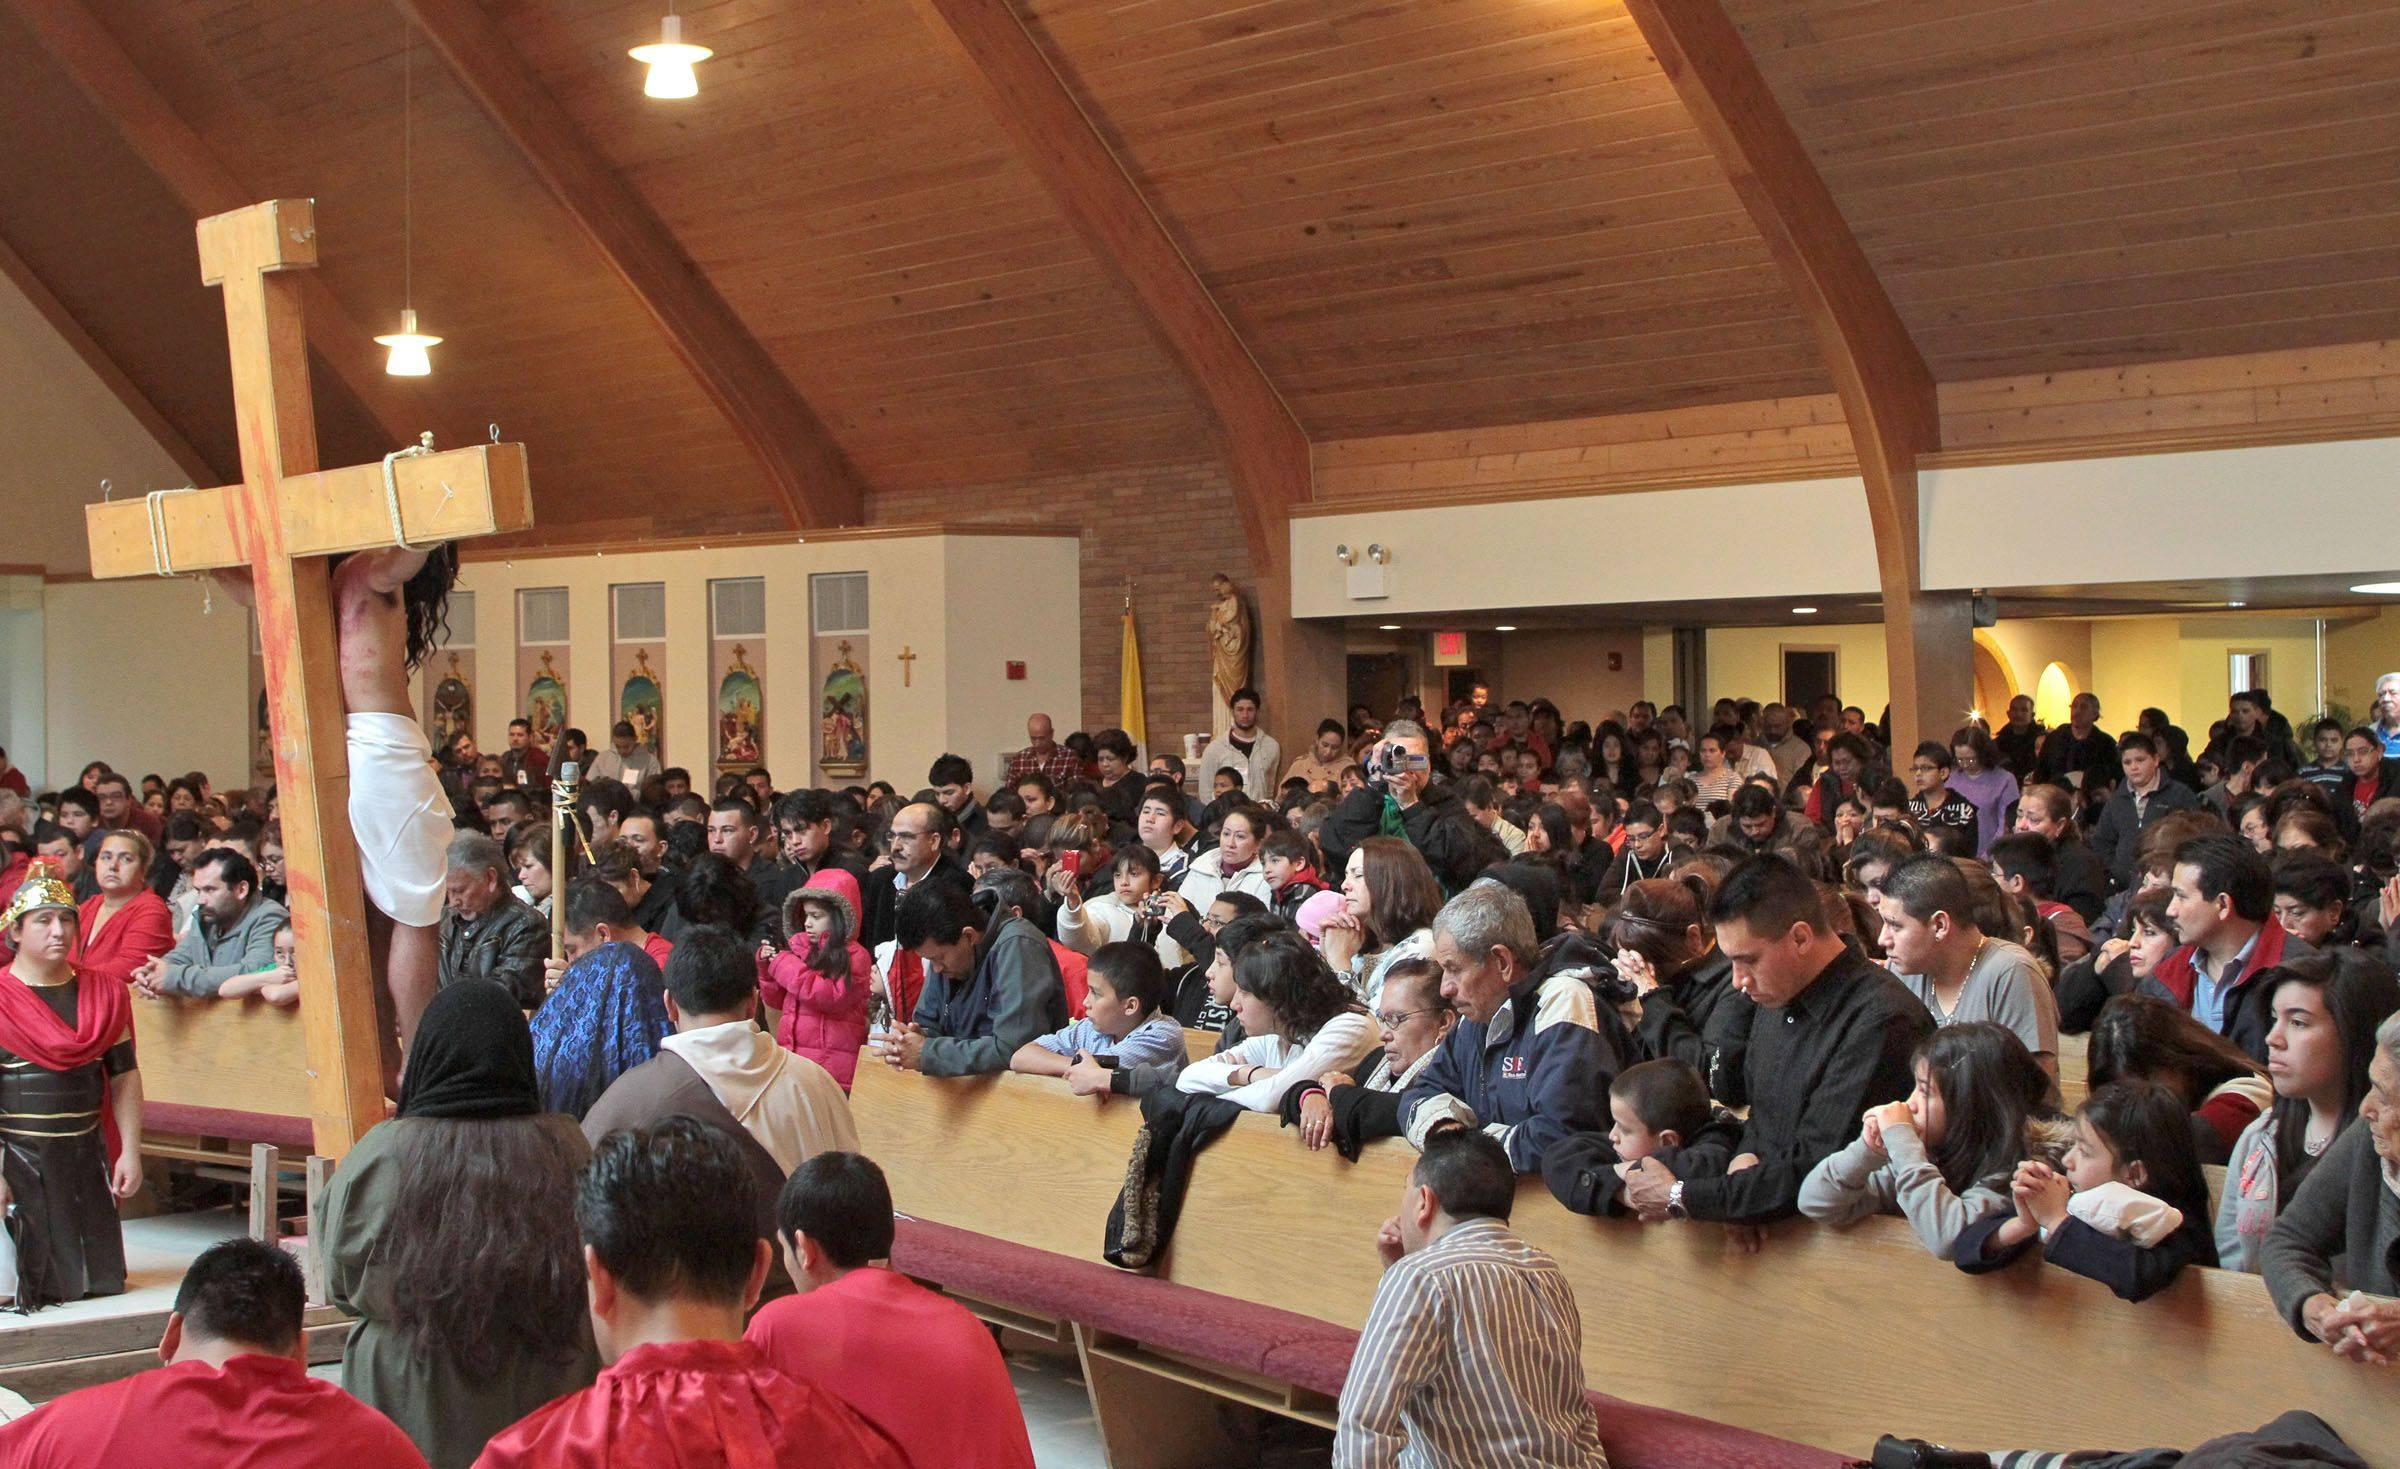 A standing-room-only crowd watches as the Most Blessed Trinity Parish in Waukegan performed the Living Stations of the Cross for Good Friday.